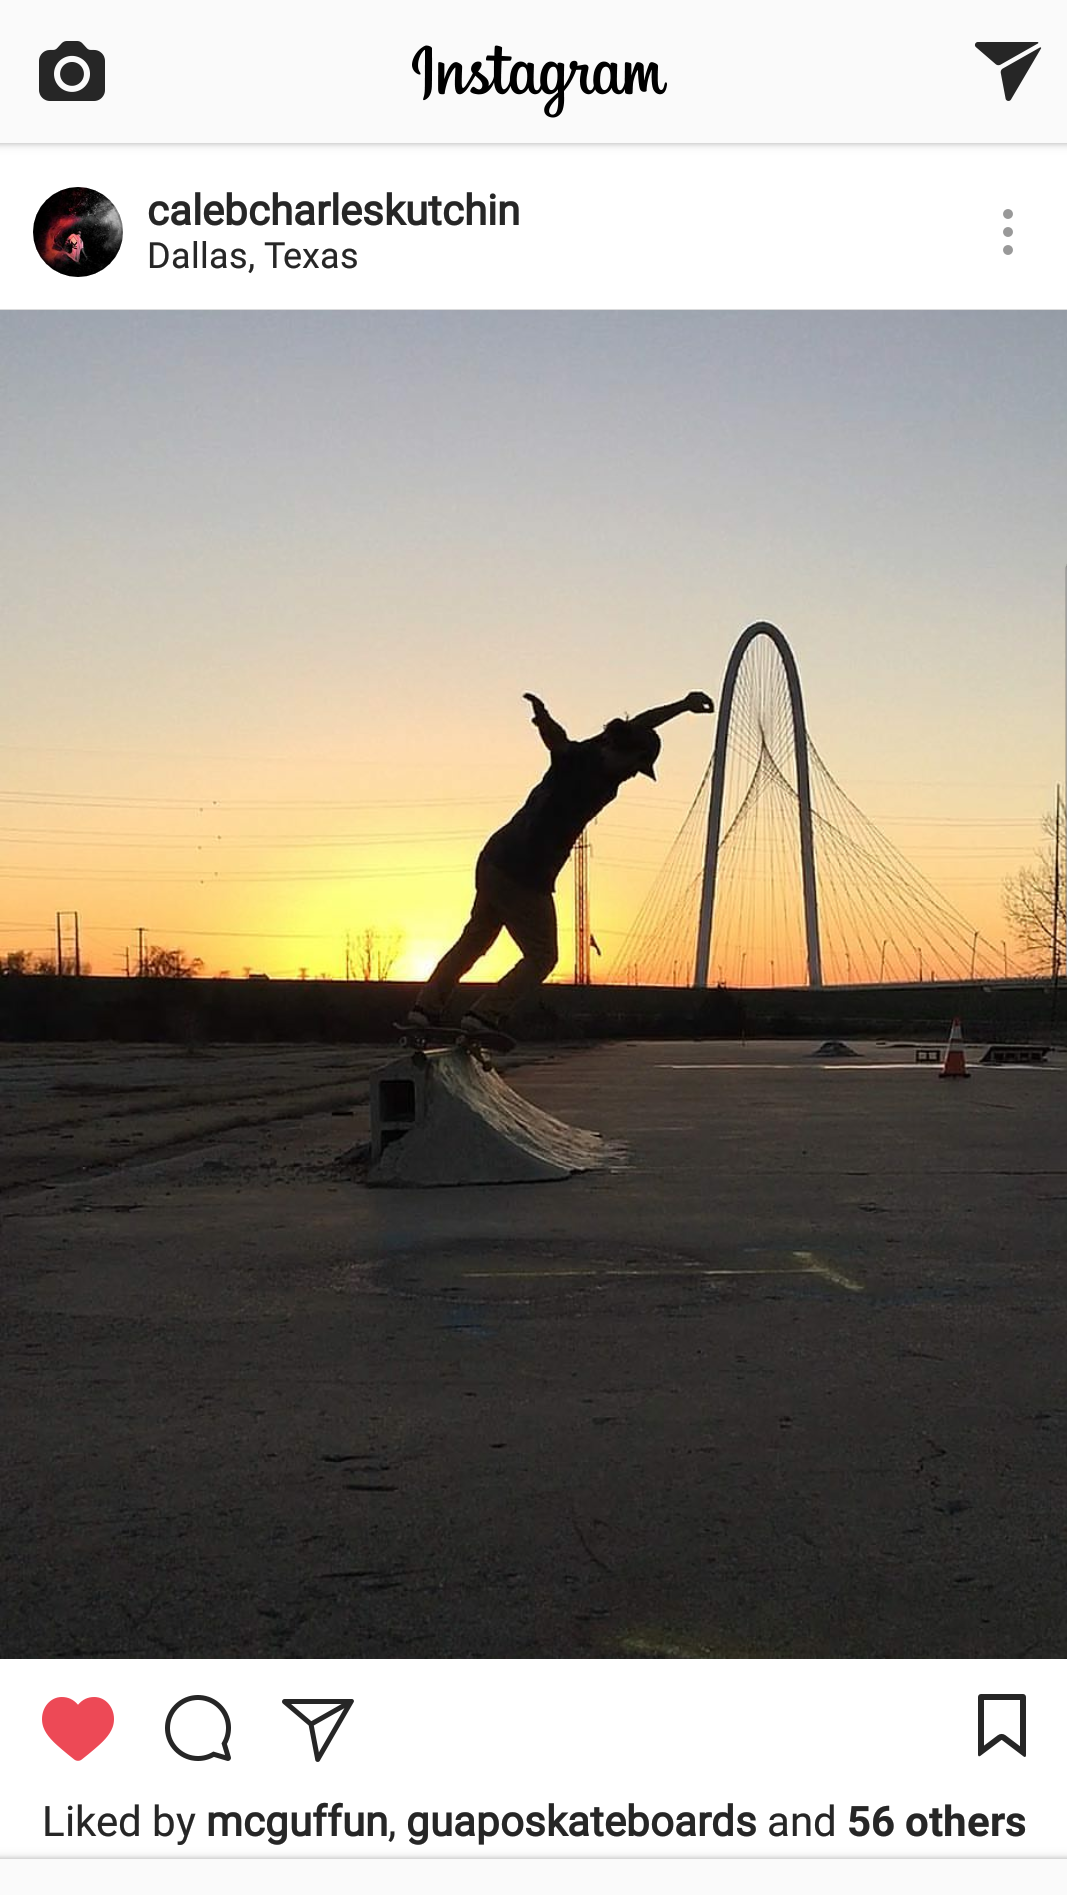 Dallas skater Caleb Kutchin skating against a silhouette of the Margaret Hunt Hill Bridge in Dallas